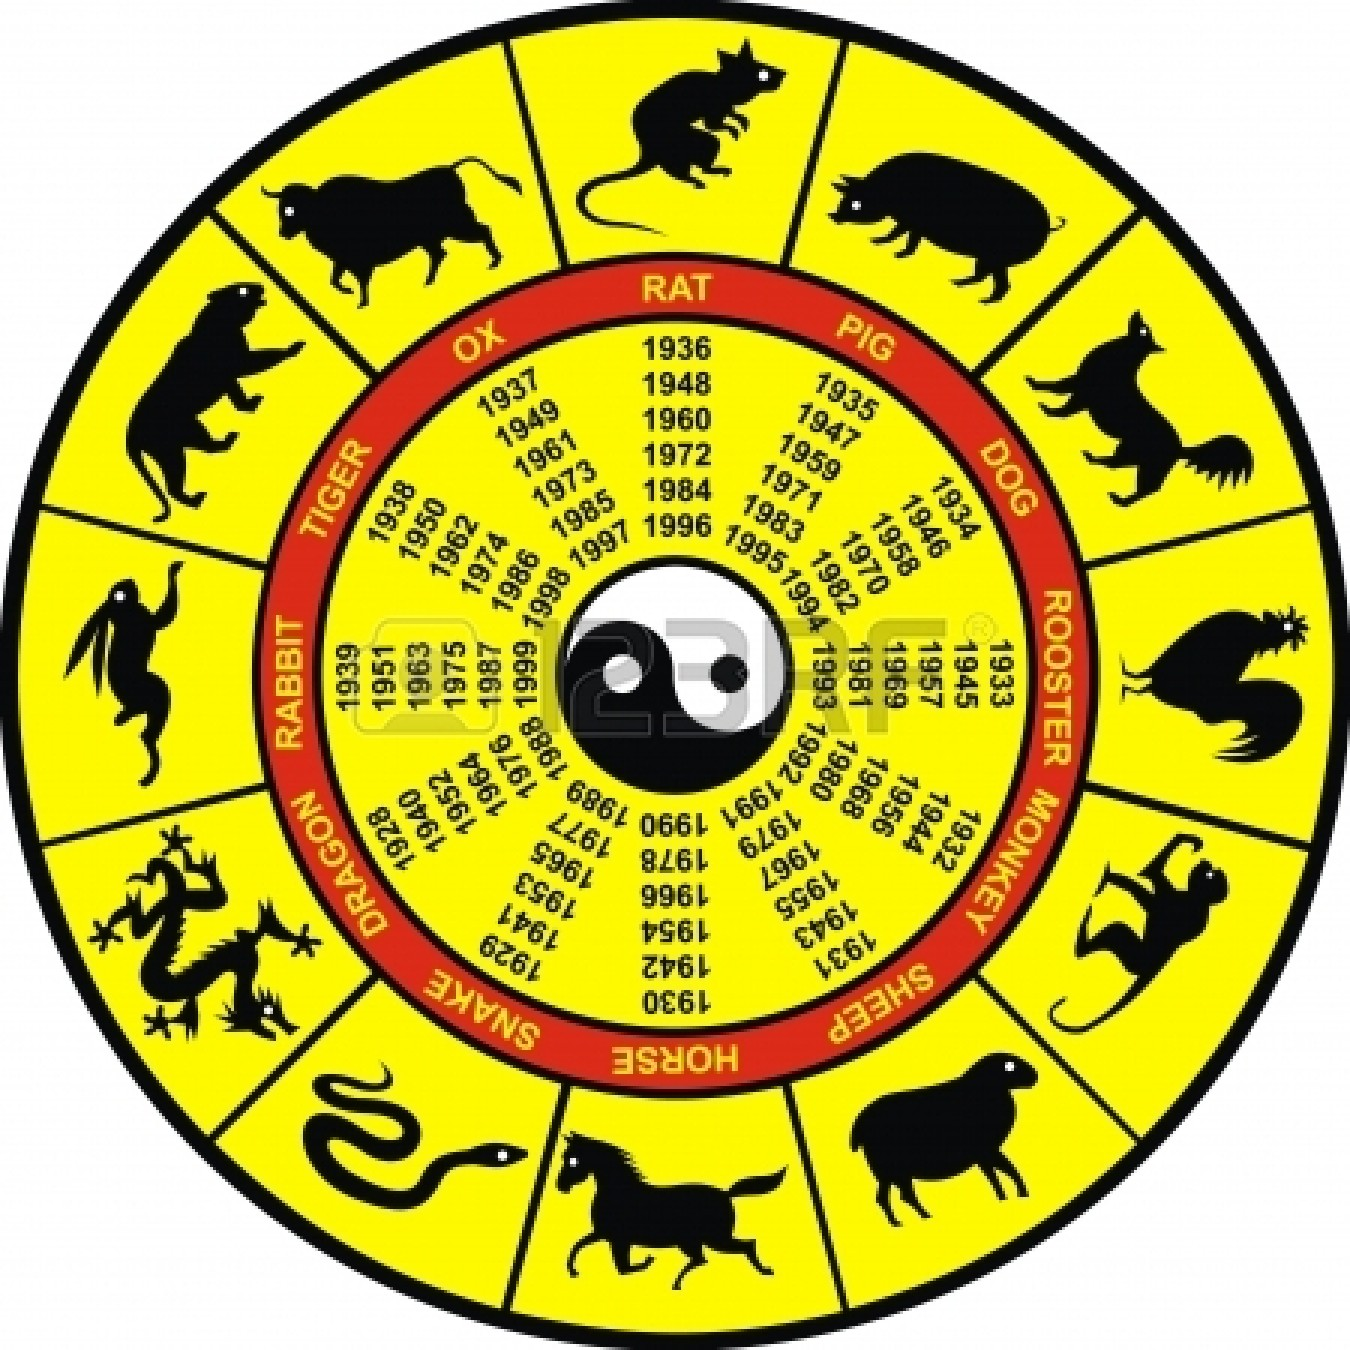 Cheinse zodiac animals horoscope wheel